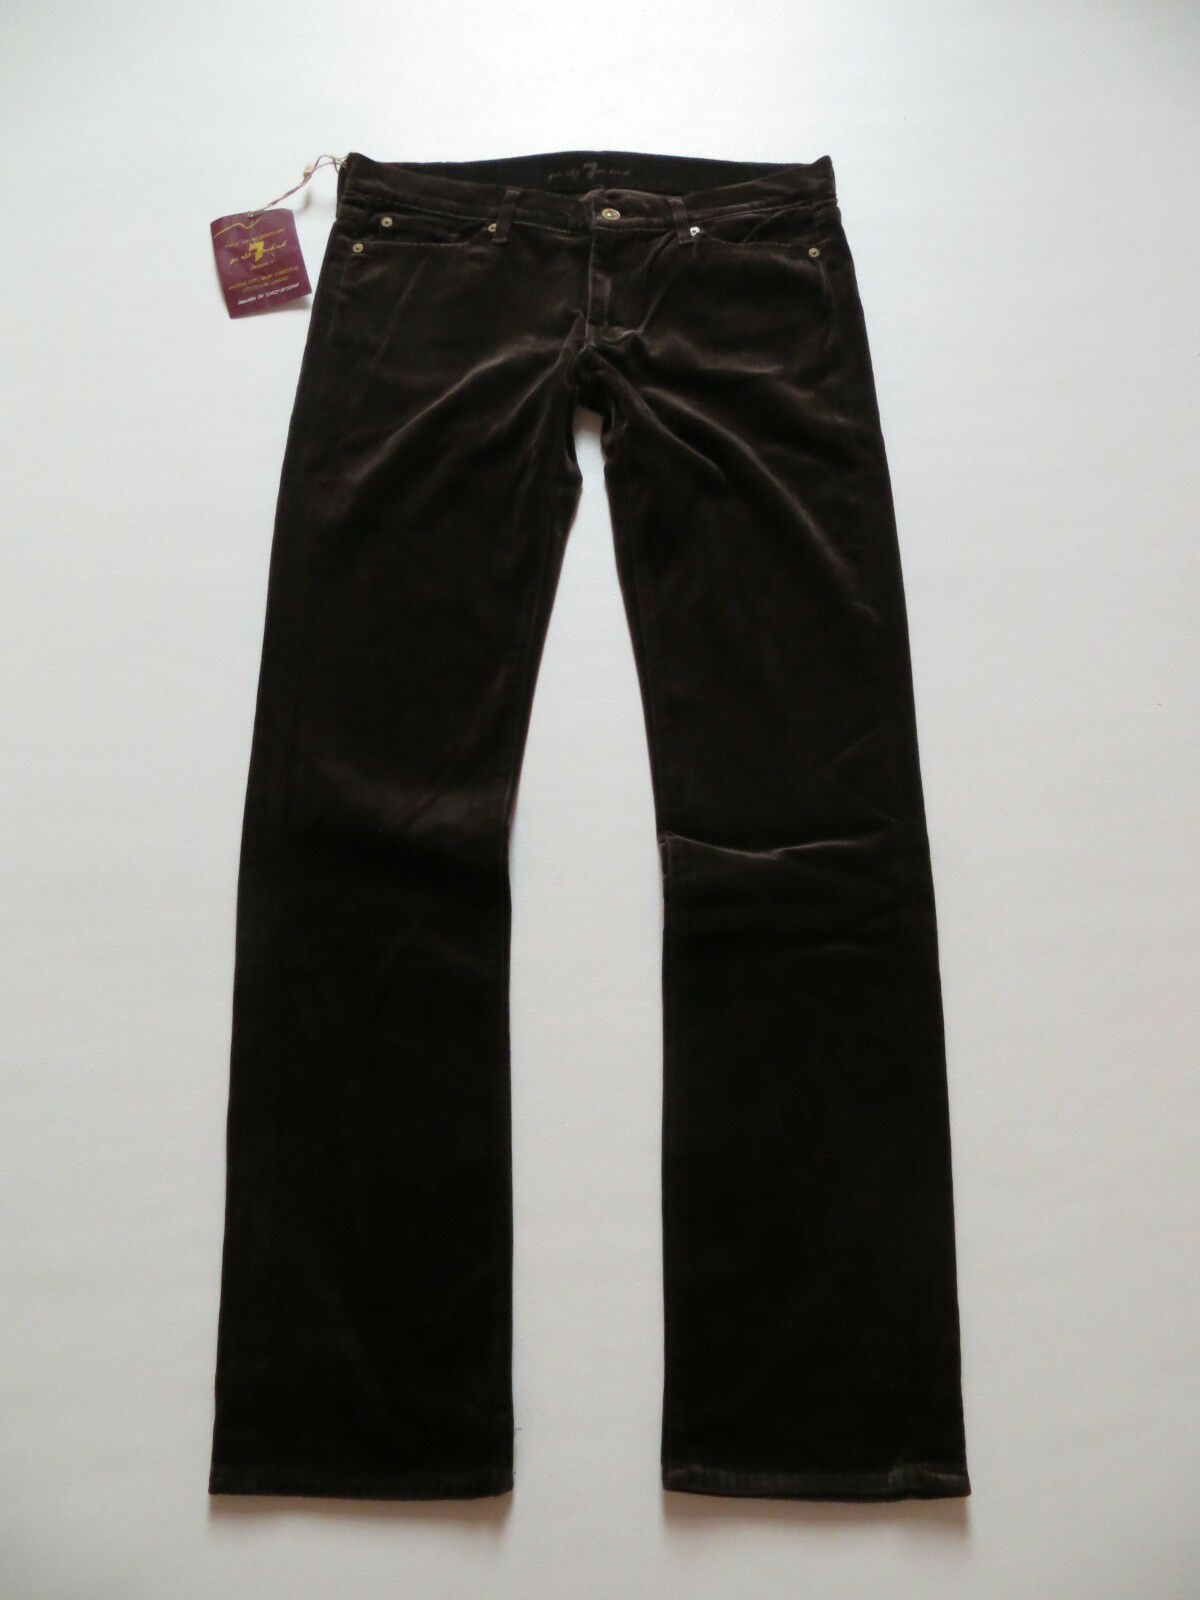 7 For All Mankind SAMT Jeans Hose W 31  L 34 braun NEU   warm made in USA   40